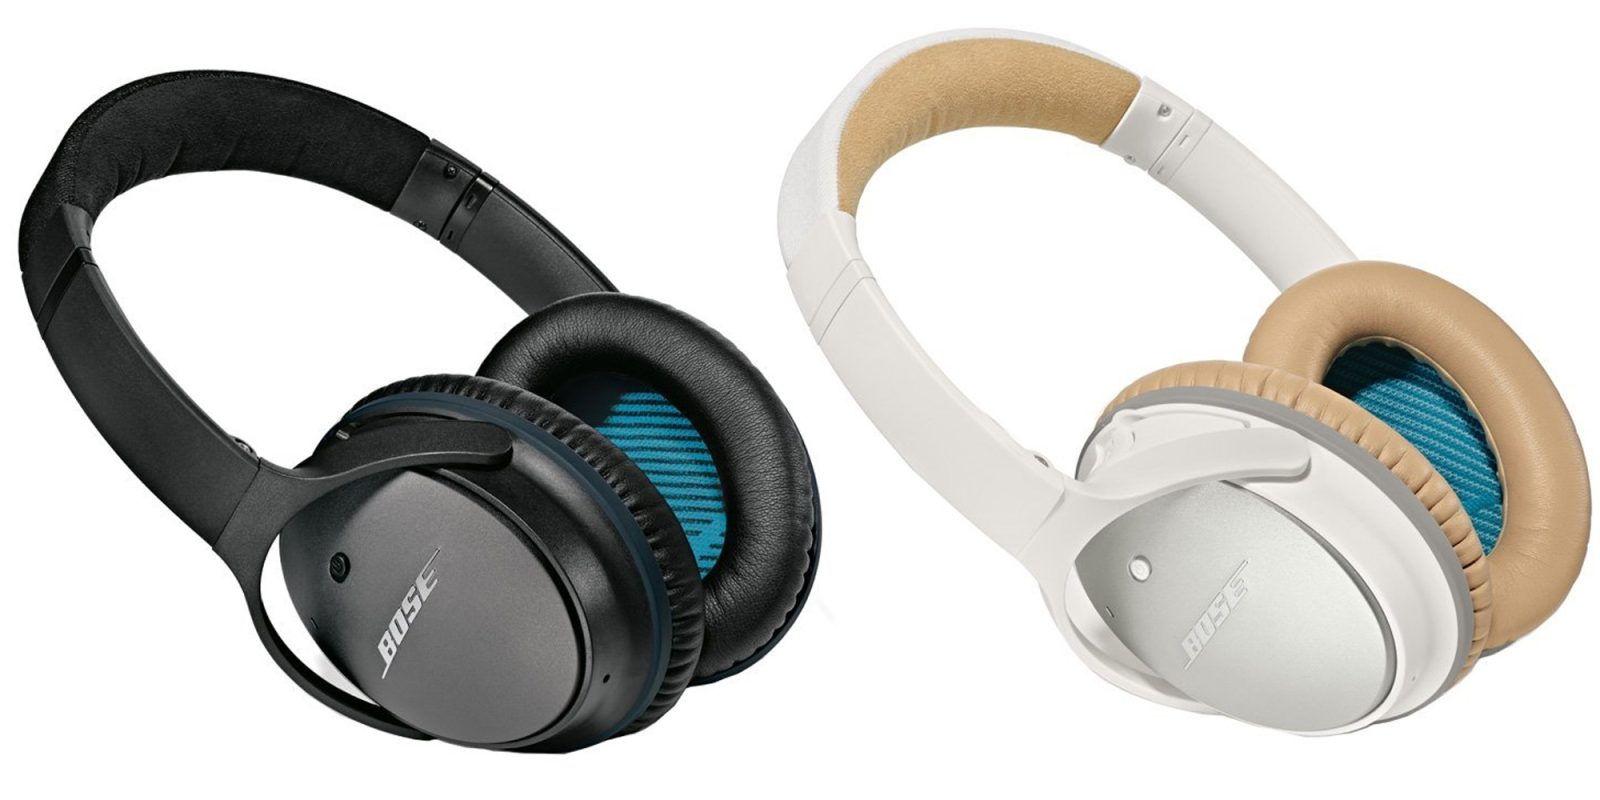 393e2d9d045 Bose QC25 acoustic noise cancelling headphones for iOS devices now $175  (Reg. $250)